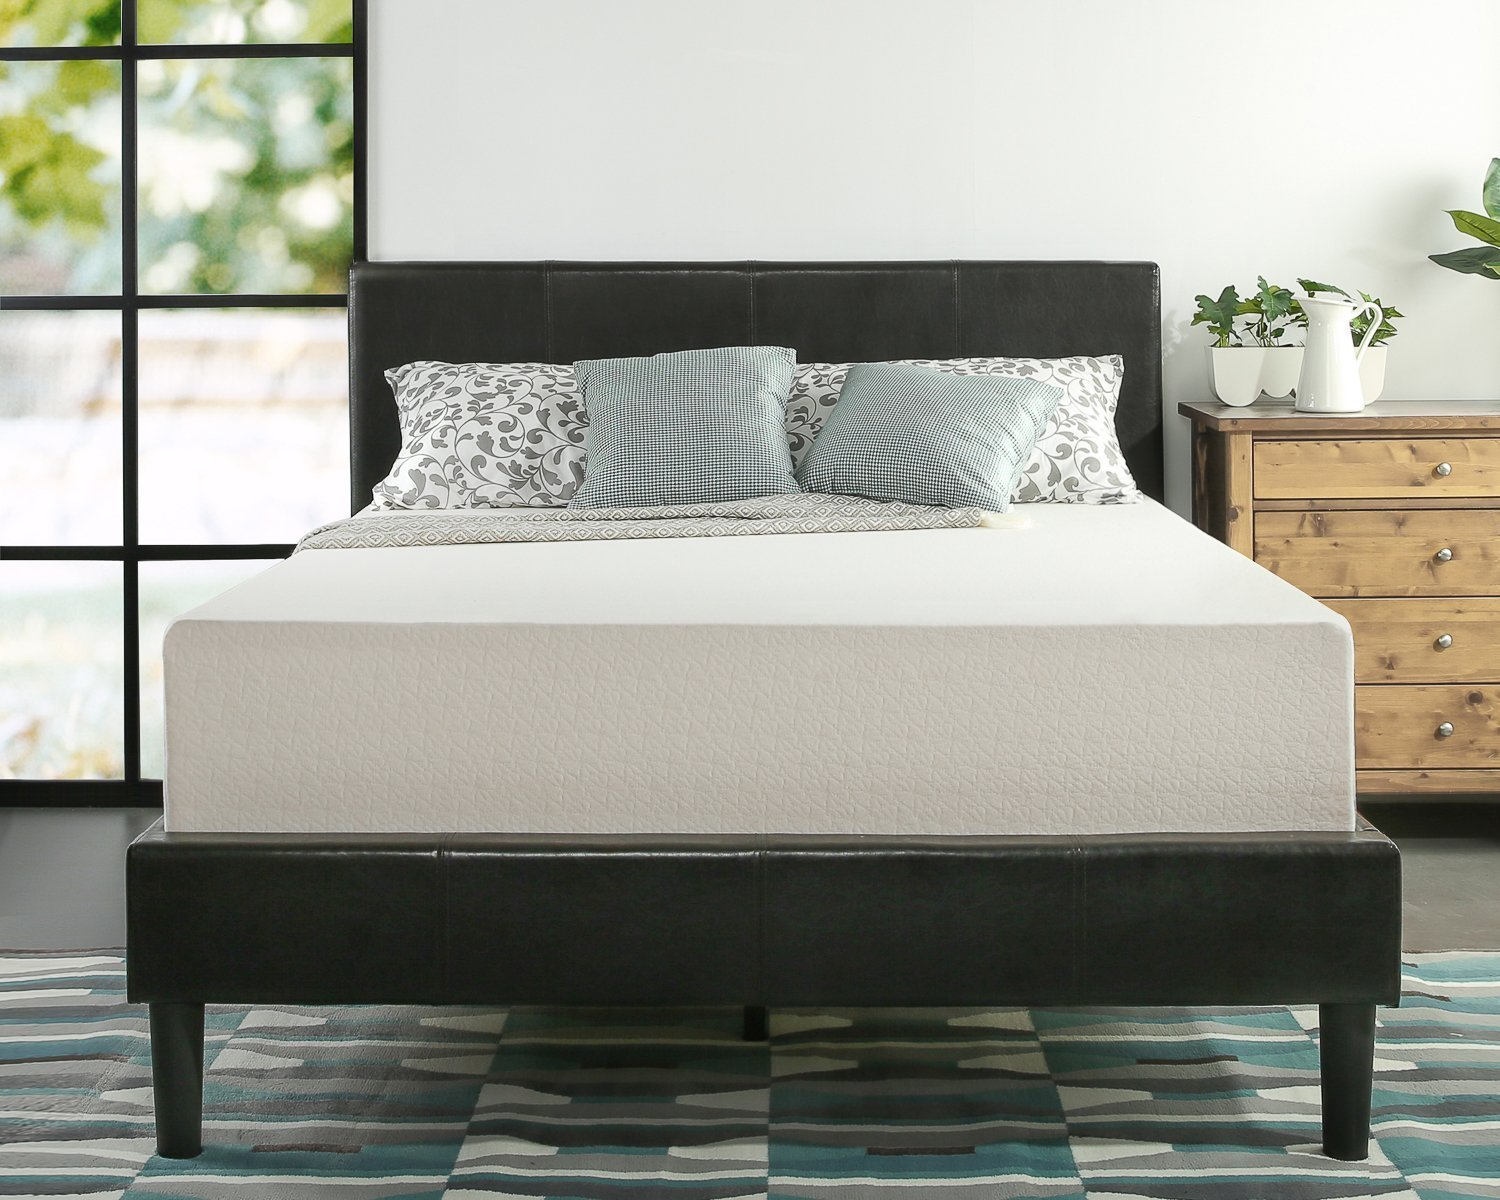 Zinus Memory Foam Mattress Reviews